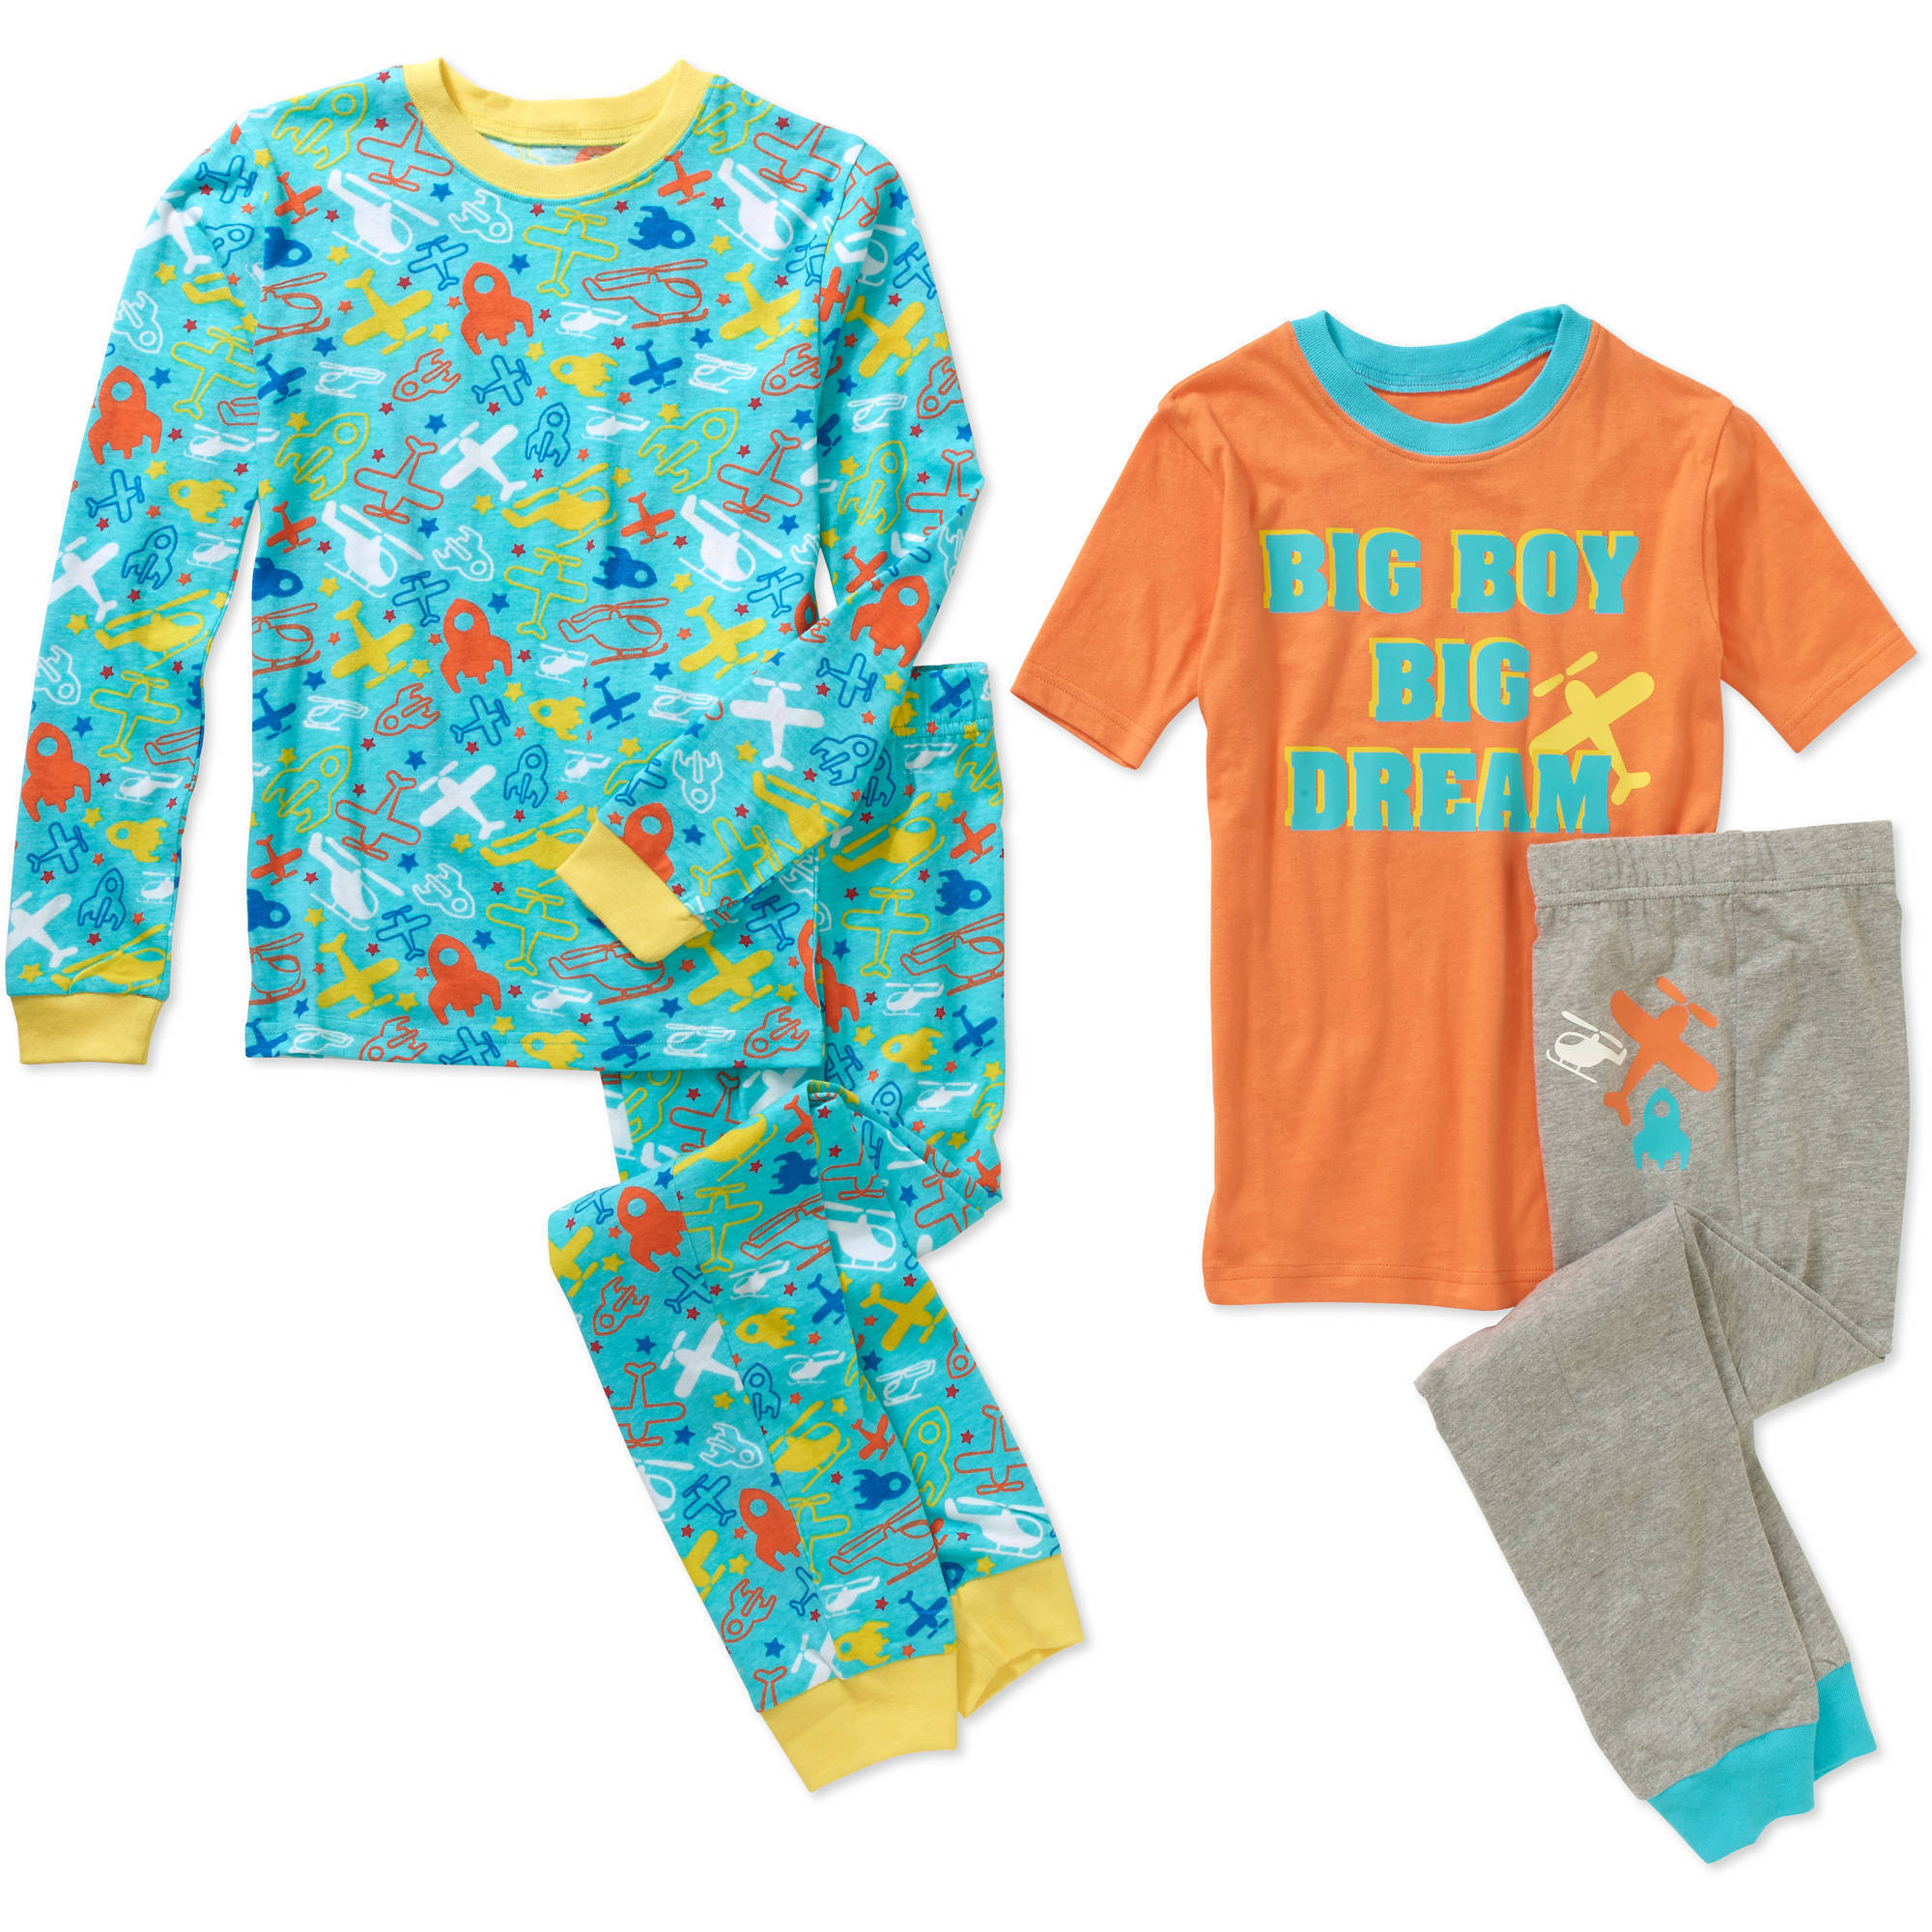 Boys' 4 Piece Cotton Pajama Sleepwear Set, Available in 6 Prints